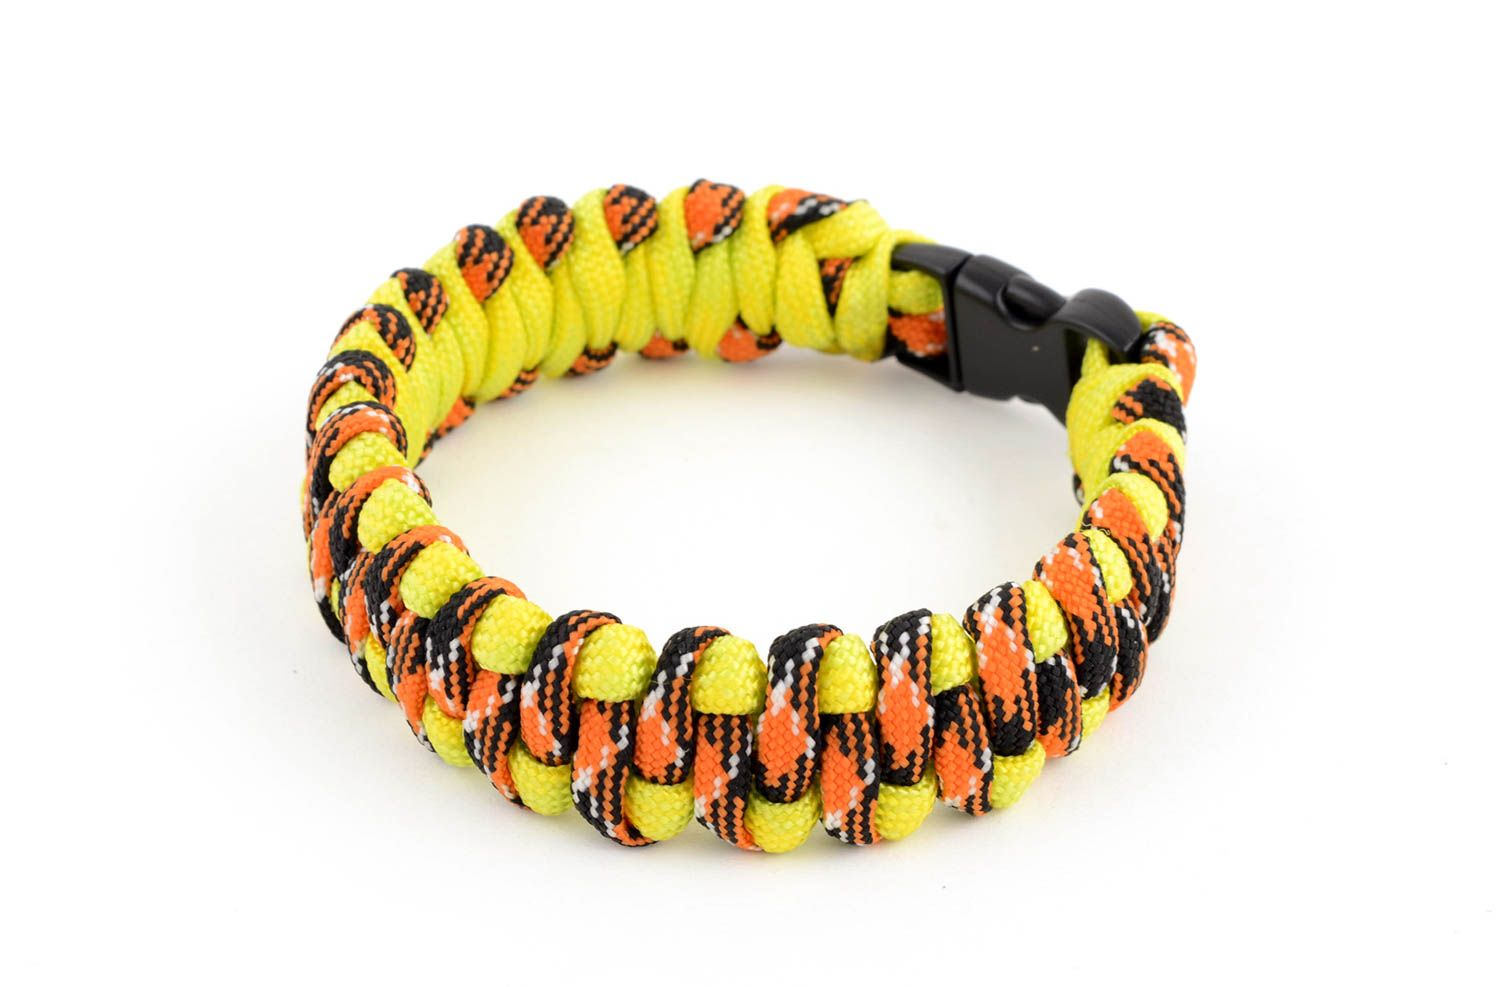 Handmade paracord bracelet parachute cord bracelet hiking equipment cool gifts photo 1